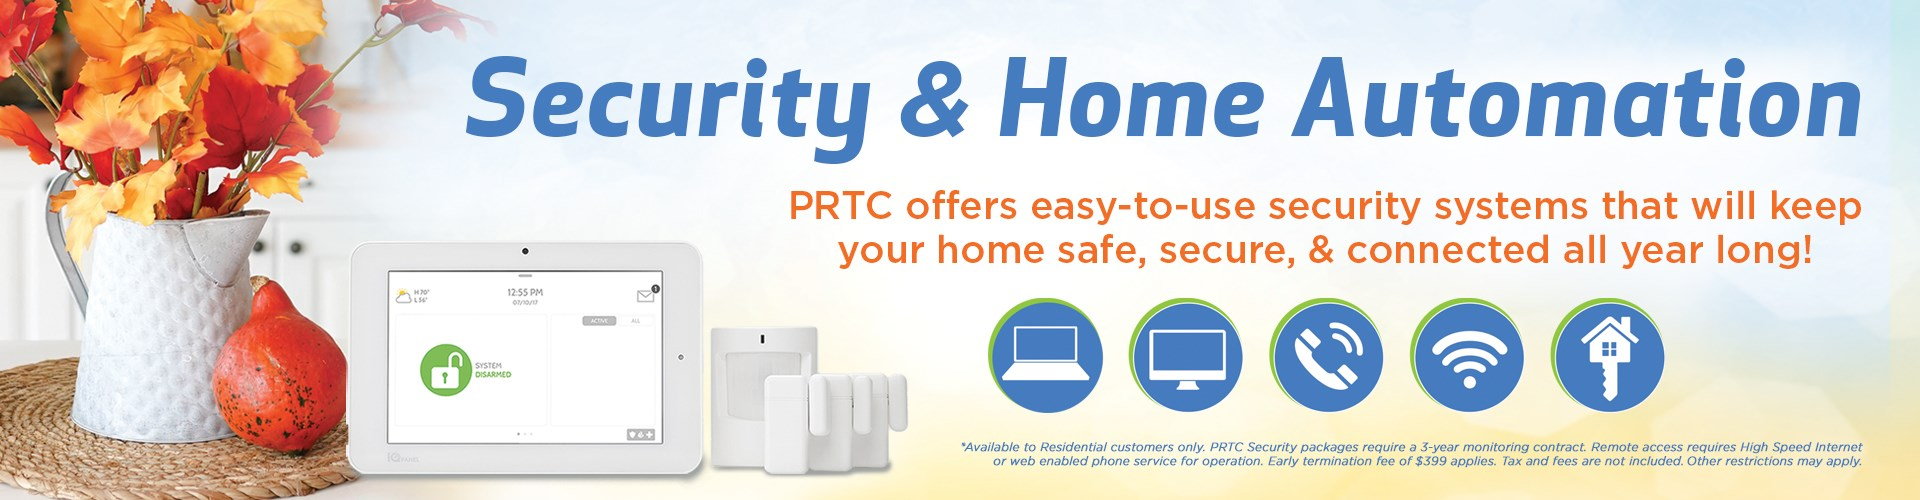 Security and Home Automation